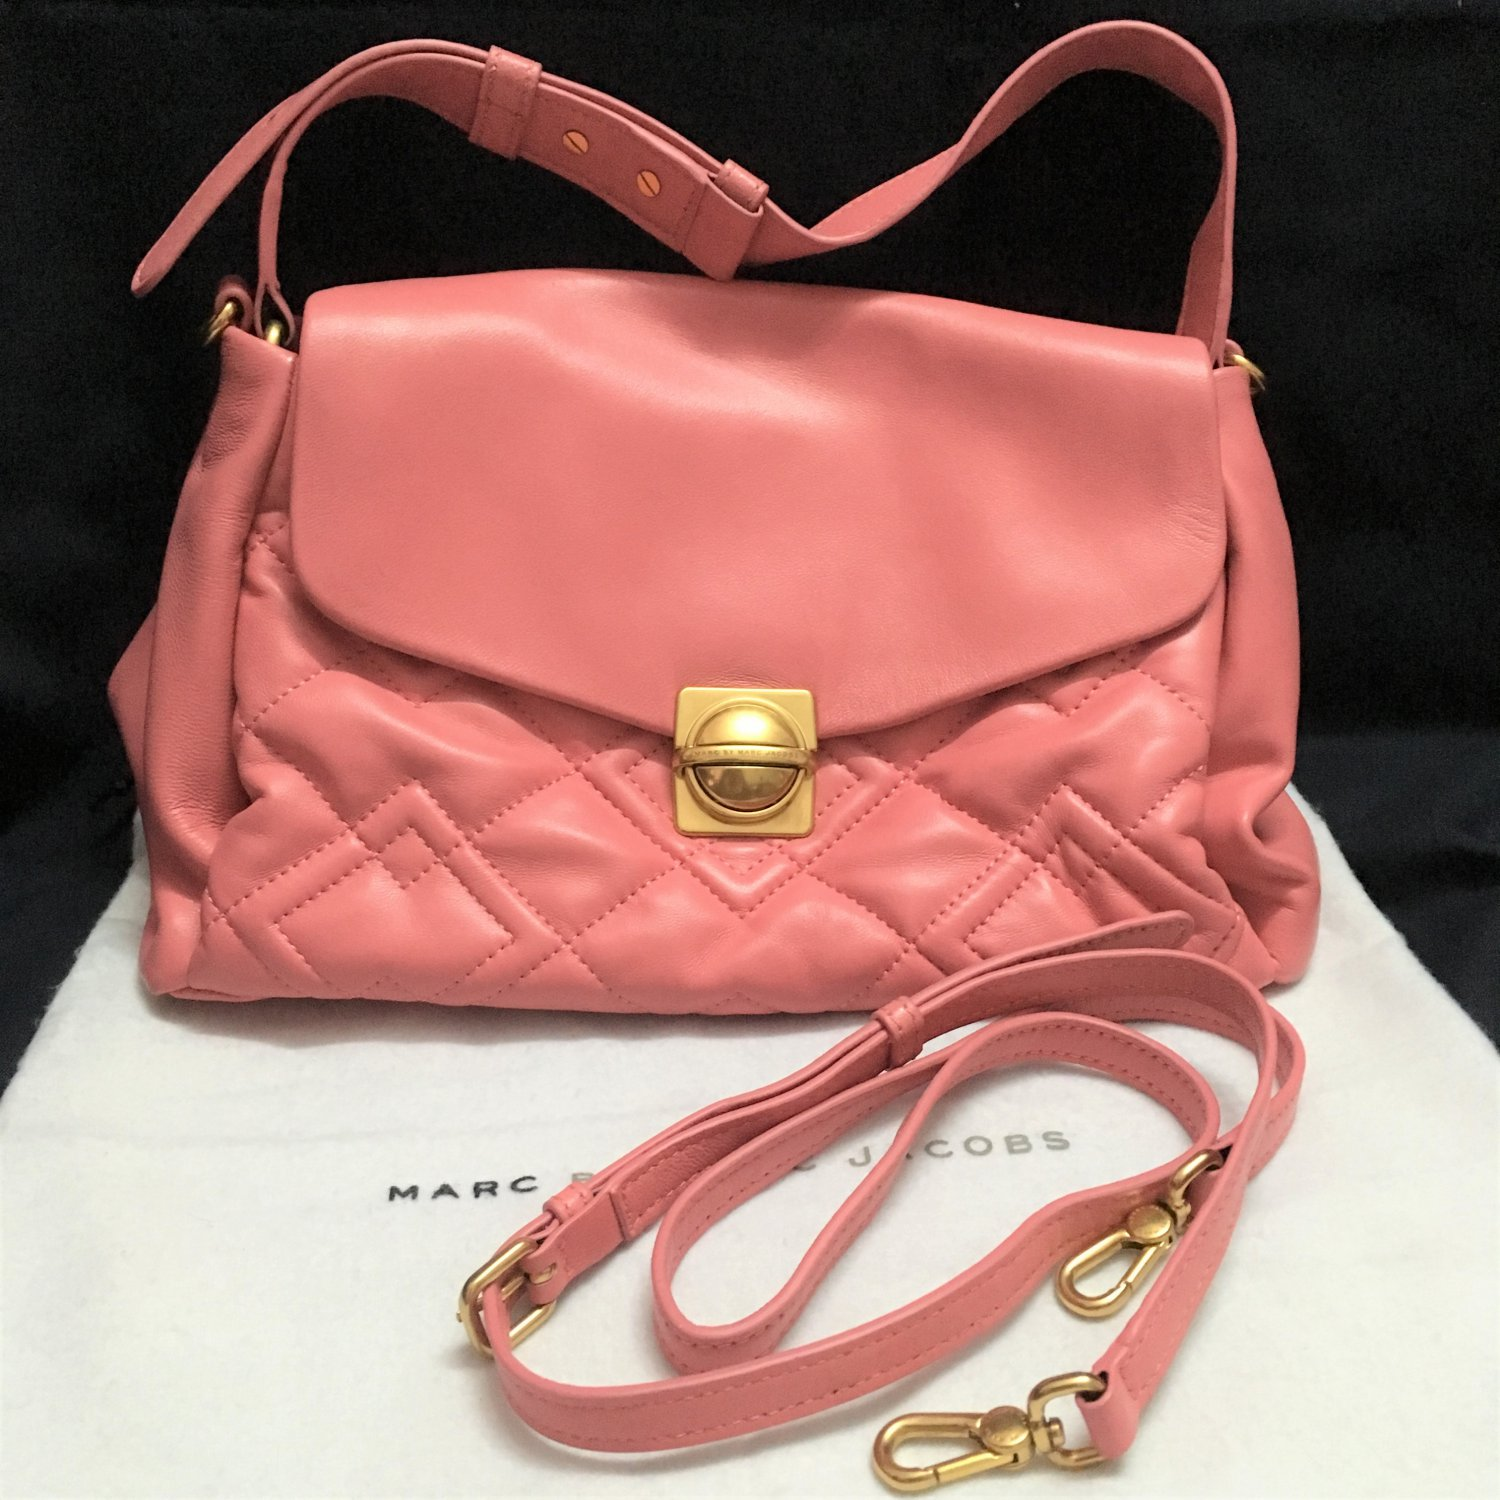 Marc by Marc Jacobs Handbags Vintage Shoulder Bag Sheep Leather Large Cherry Pink $548 Free Shipping